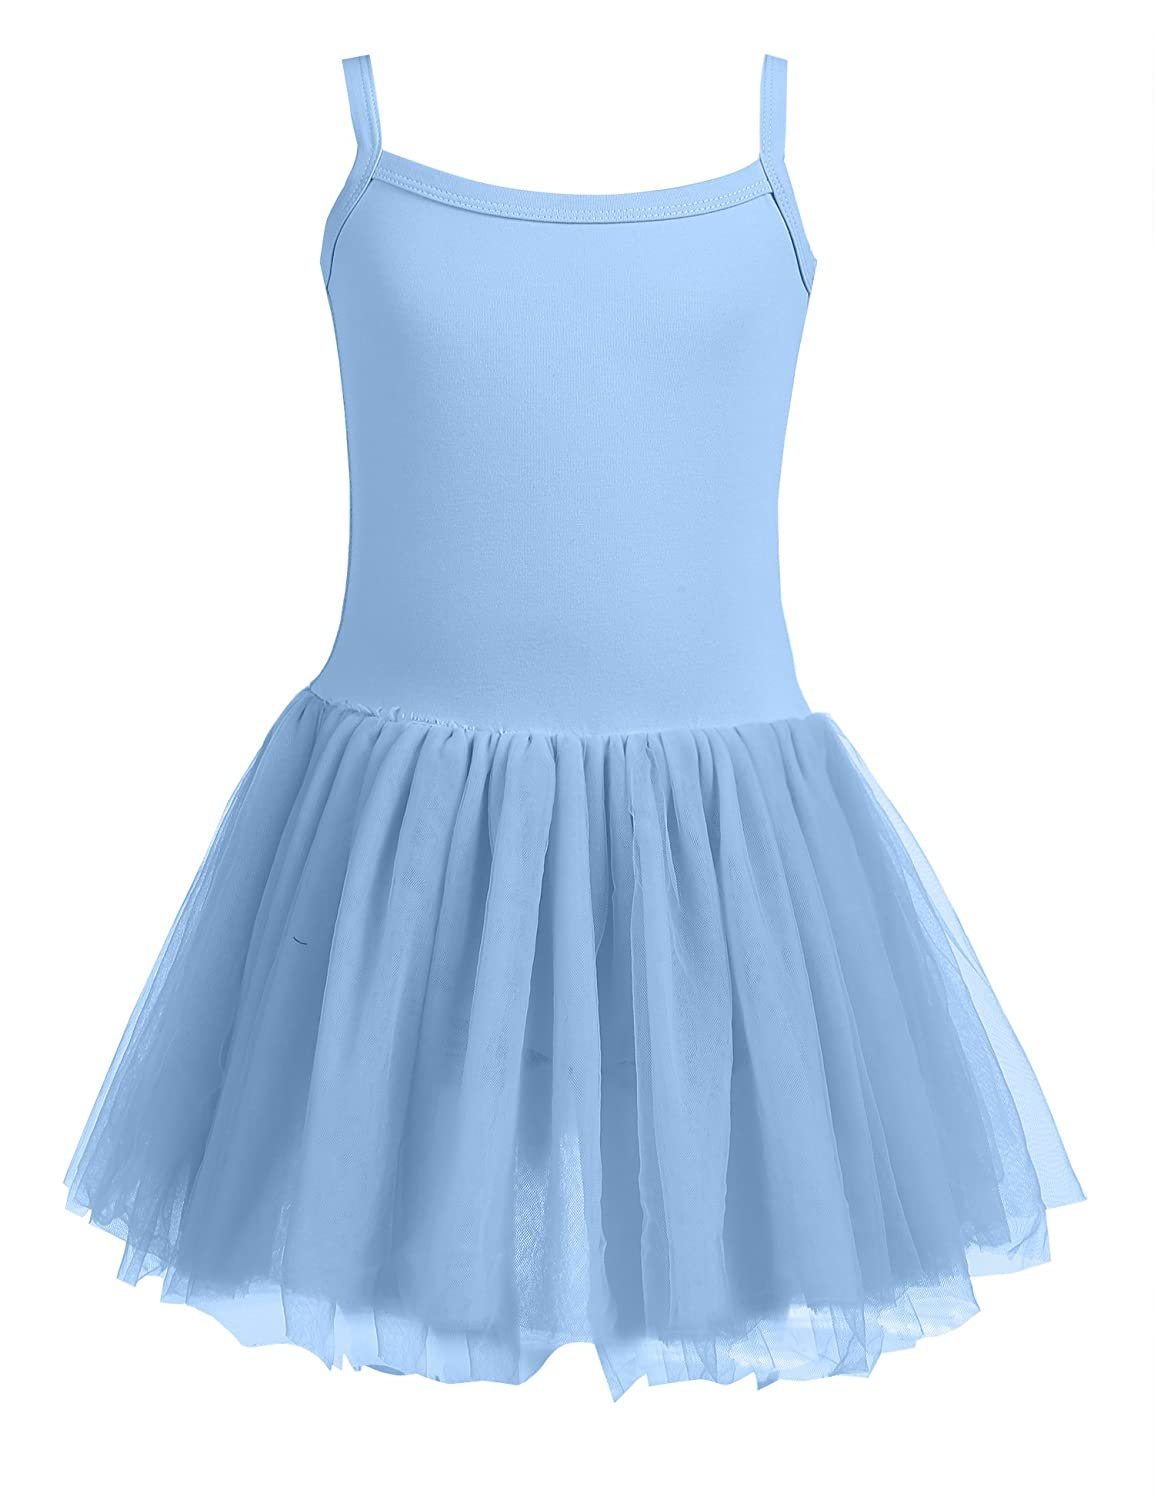 Arshiner Girls Solid Color Camisole Ruffle Tulle Mesh Tutu Dress Leotard AMS005003_BL_110